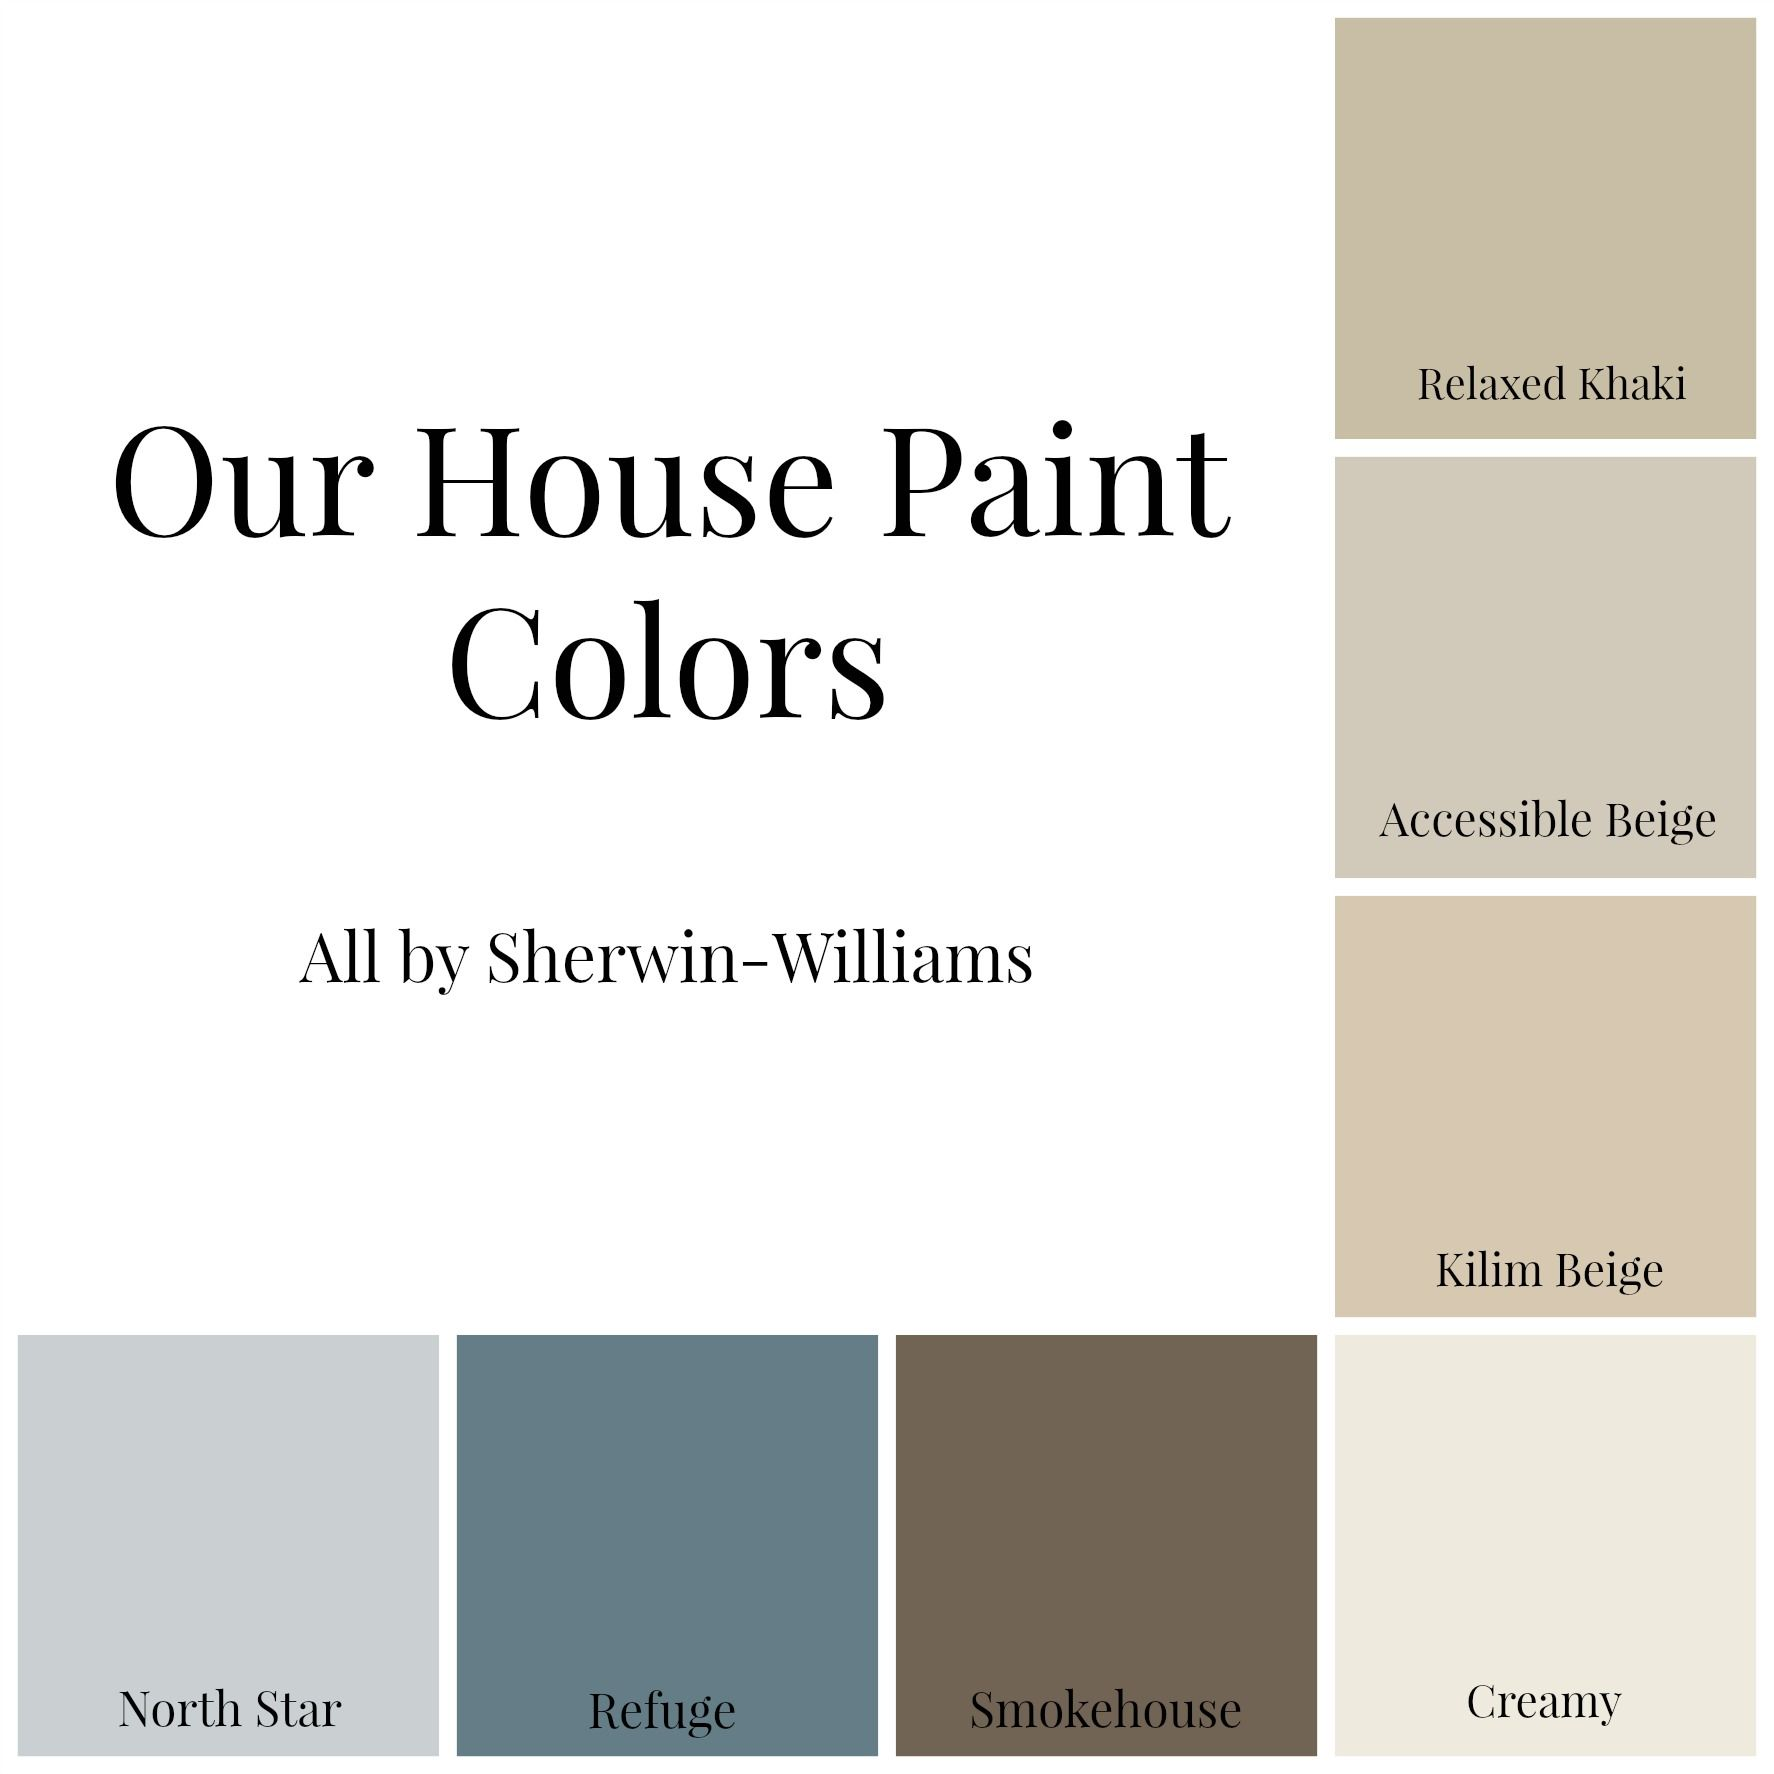 Paint Color Collage Jpg 1774 1774 Paint Colors For Home Paint Colors House Painting